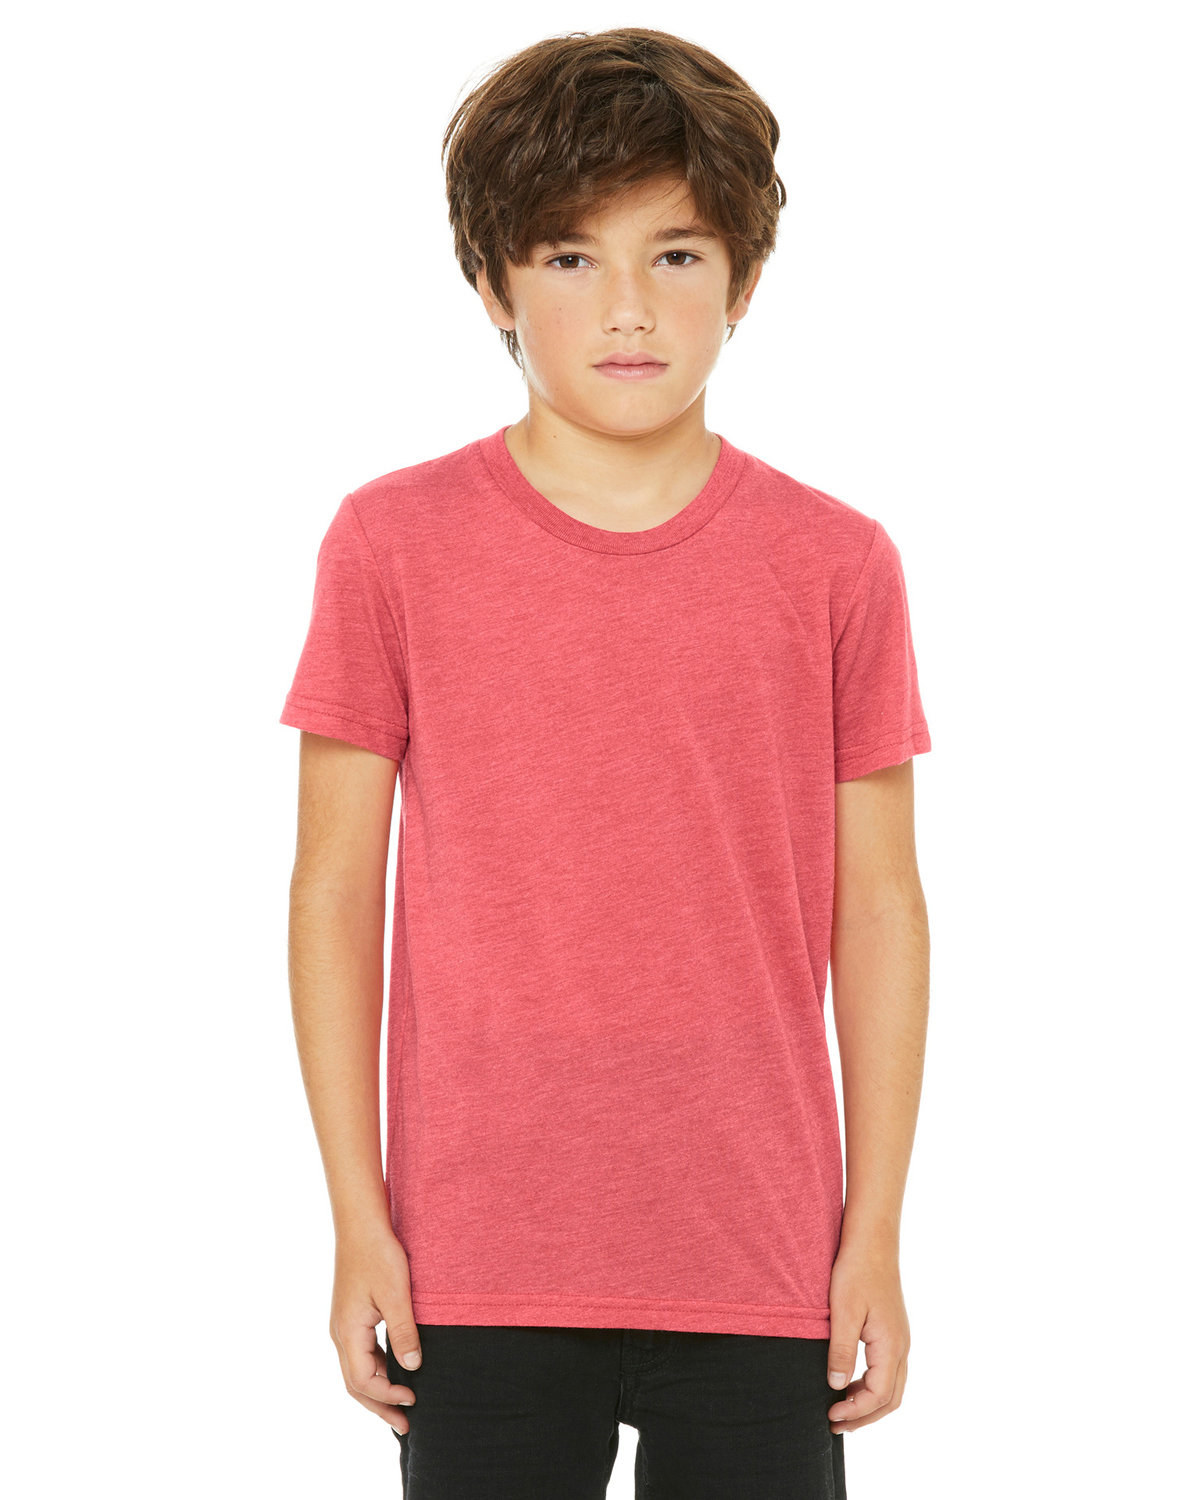 Bella + Canvas Youth Triblend Short-Sleeve T-Shirt RED TRIBLEND